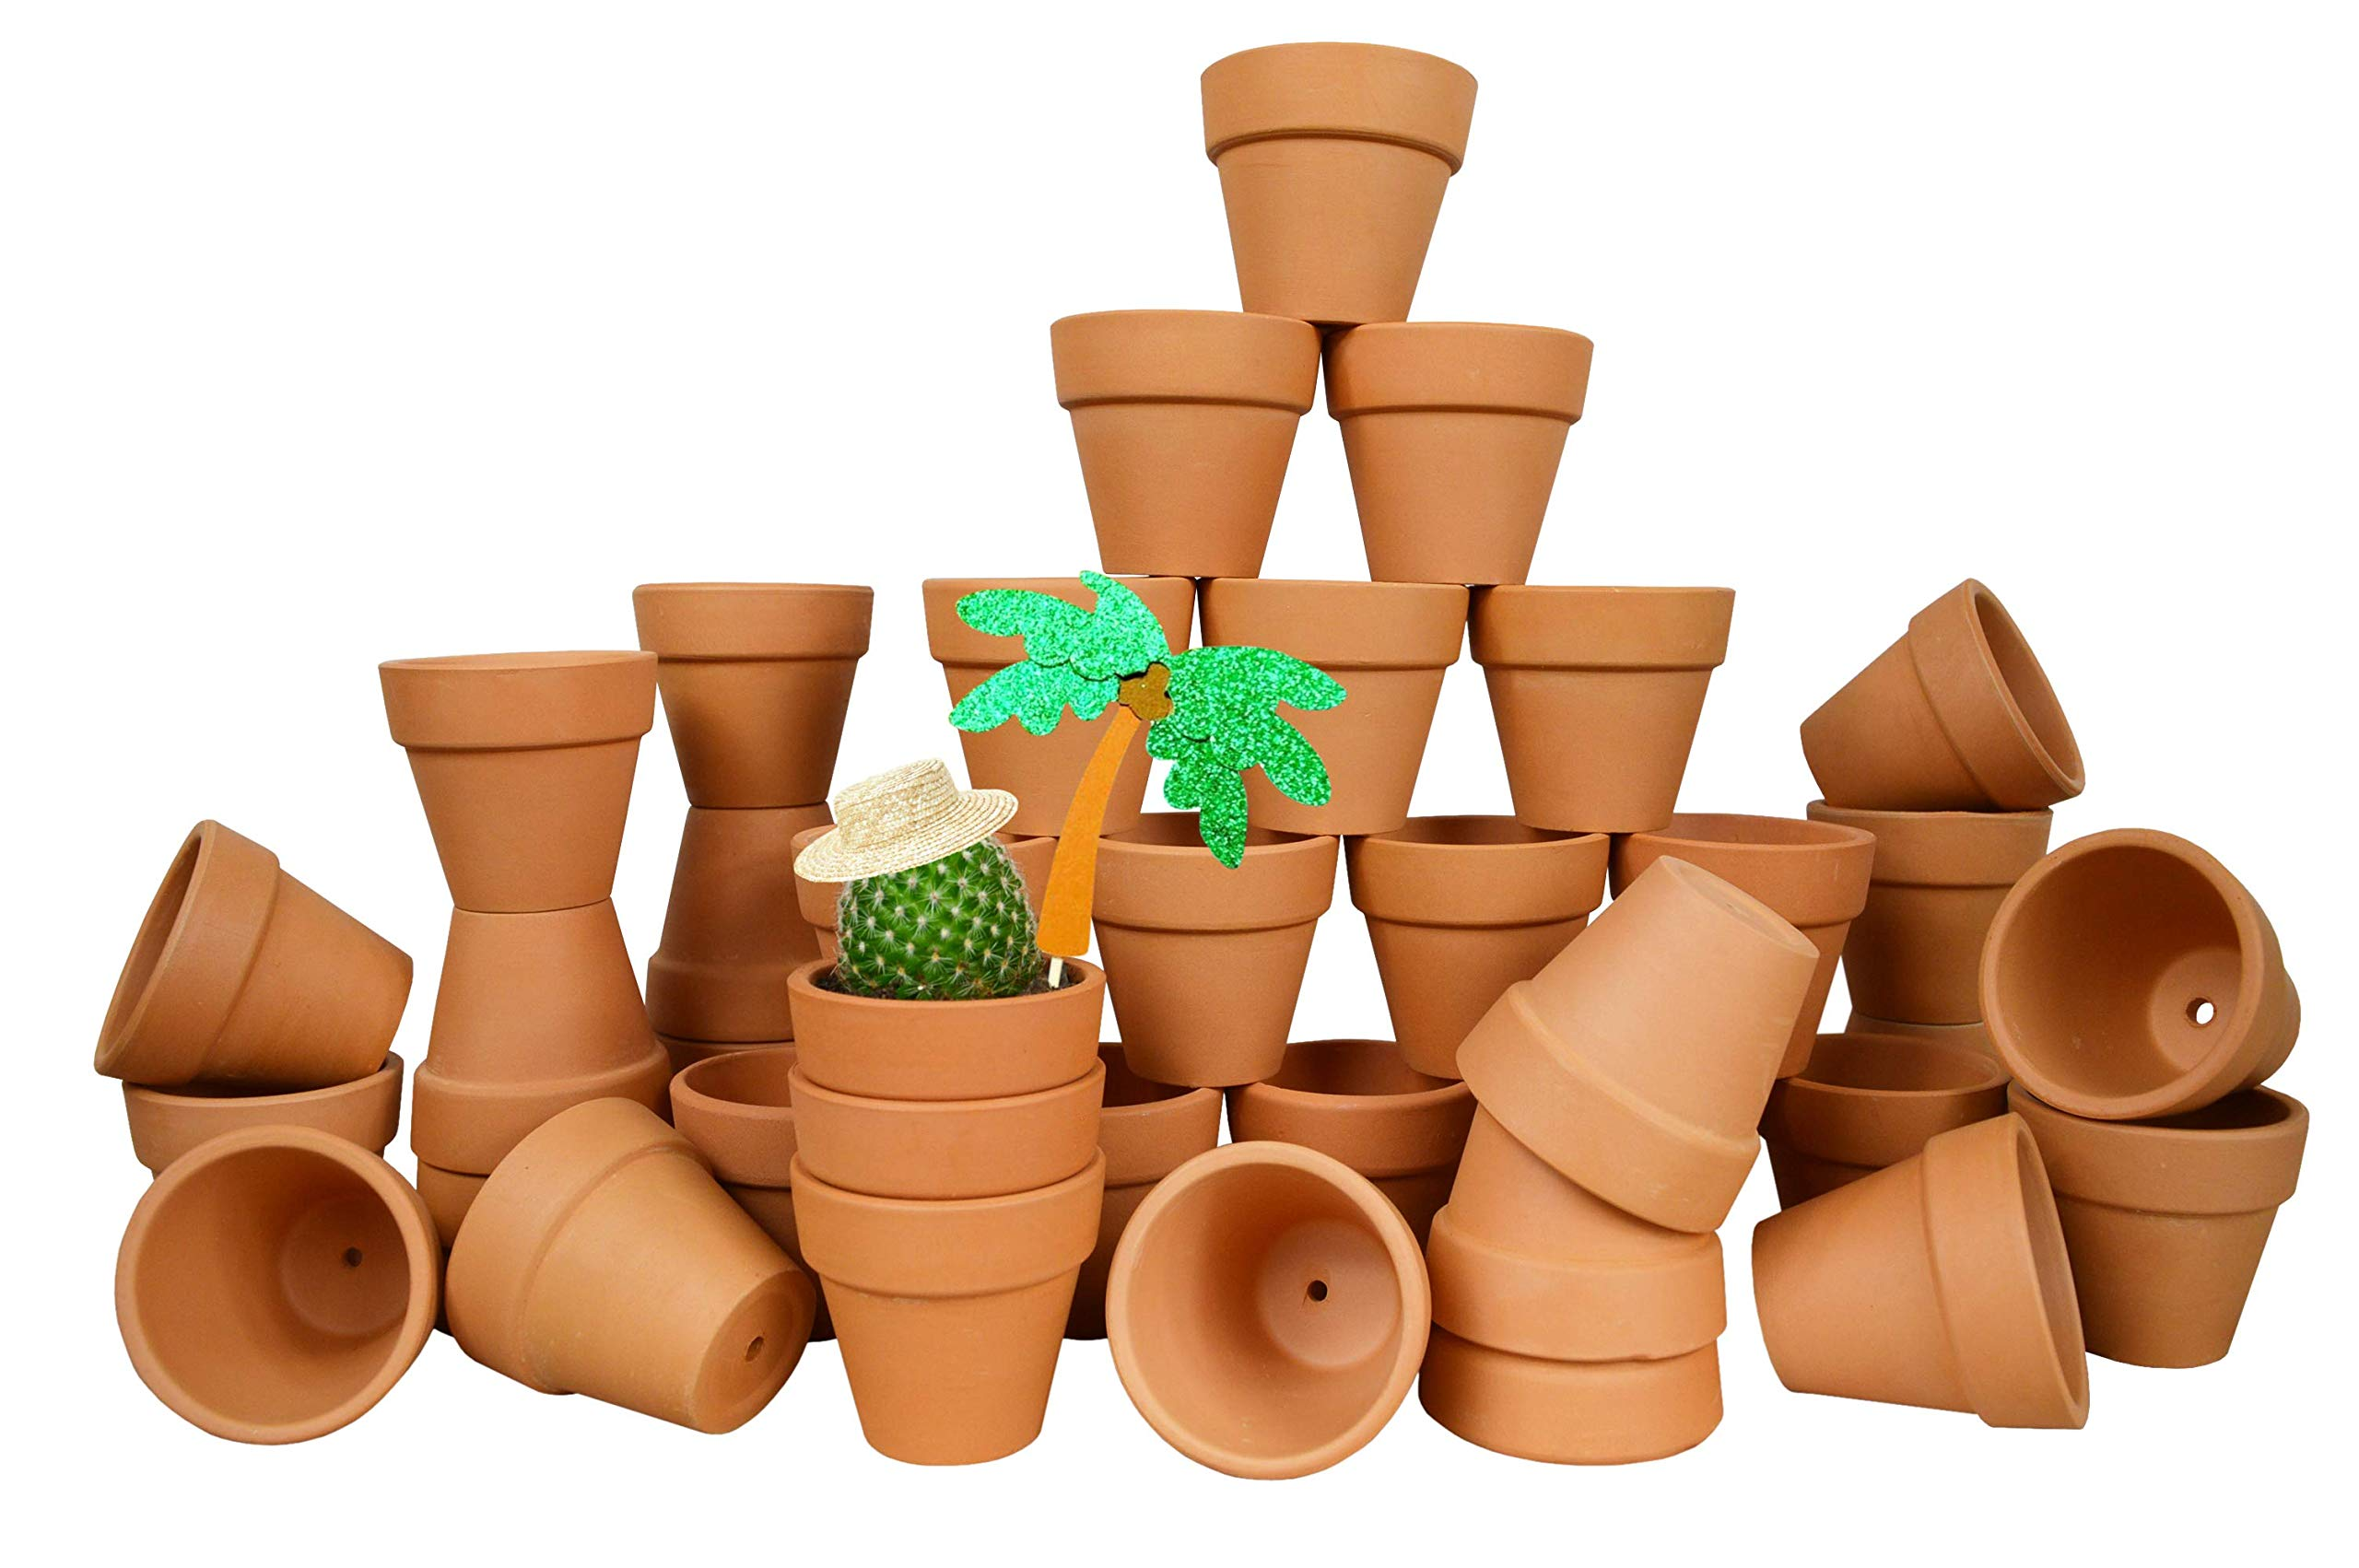 My Urban Crafts 40 Pcs - 2.1'' Mini Clay Pots Small Terracotta Pots Ceramic Pottery Planter Terra Cotta Flower Pot Succulents Nursery Pots Great Window Boxes, Cactus Plants, Crafts, Wedding Favors